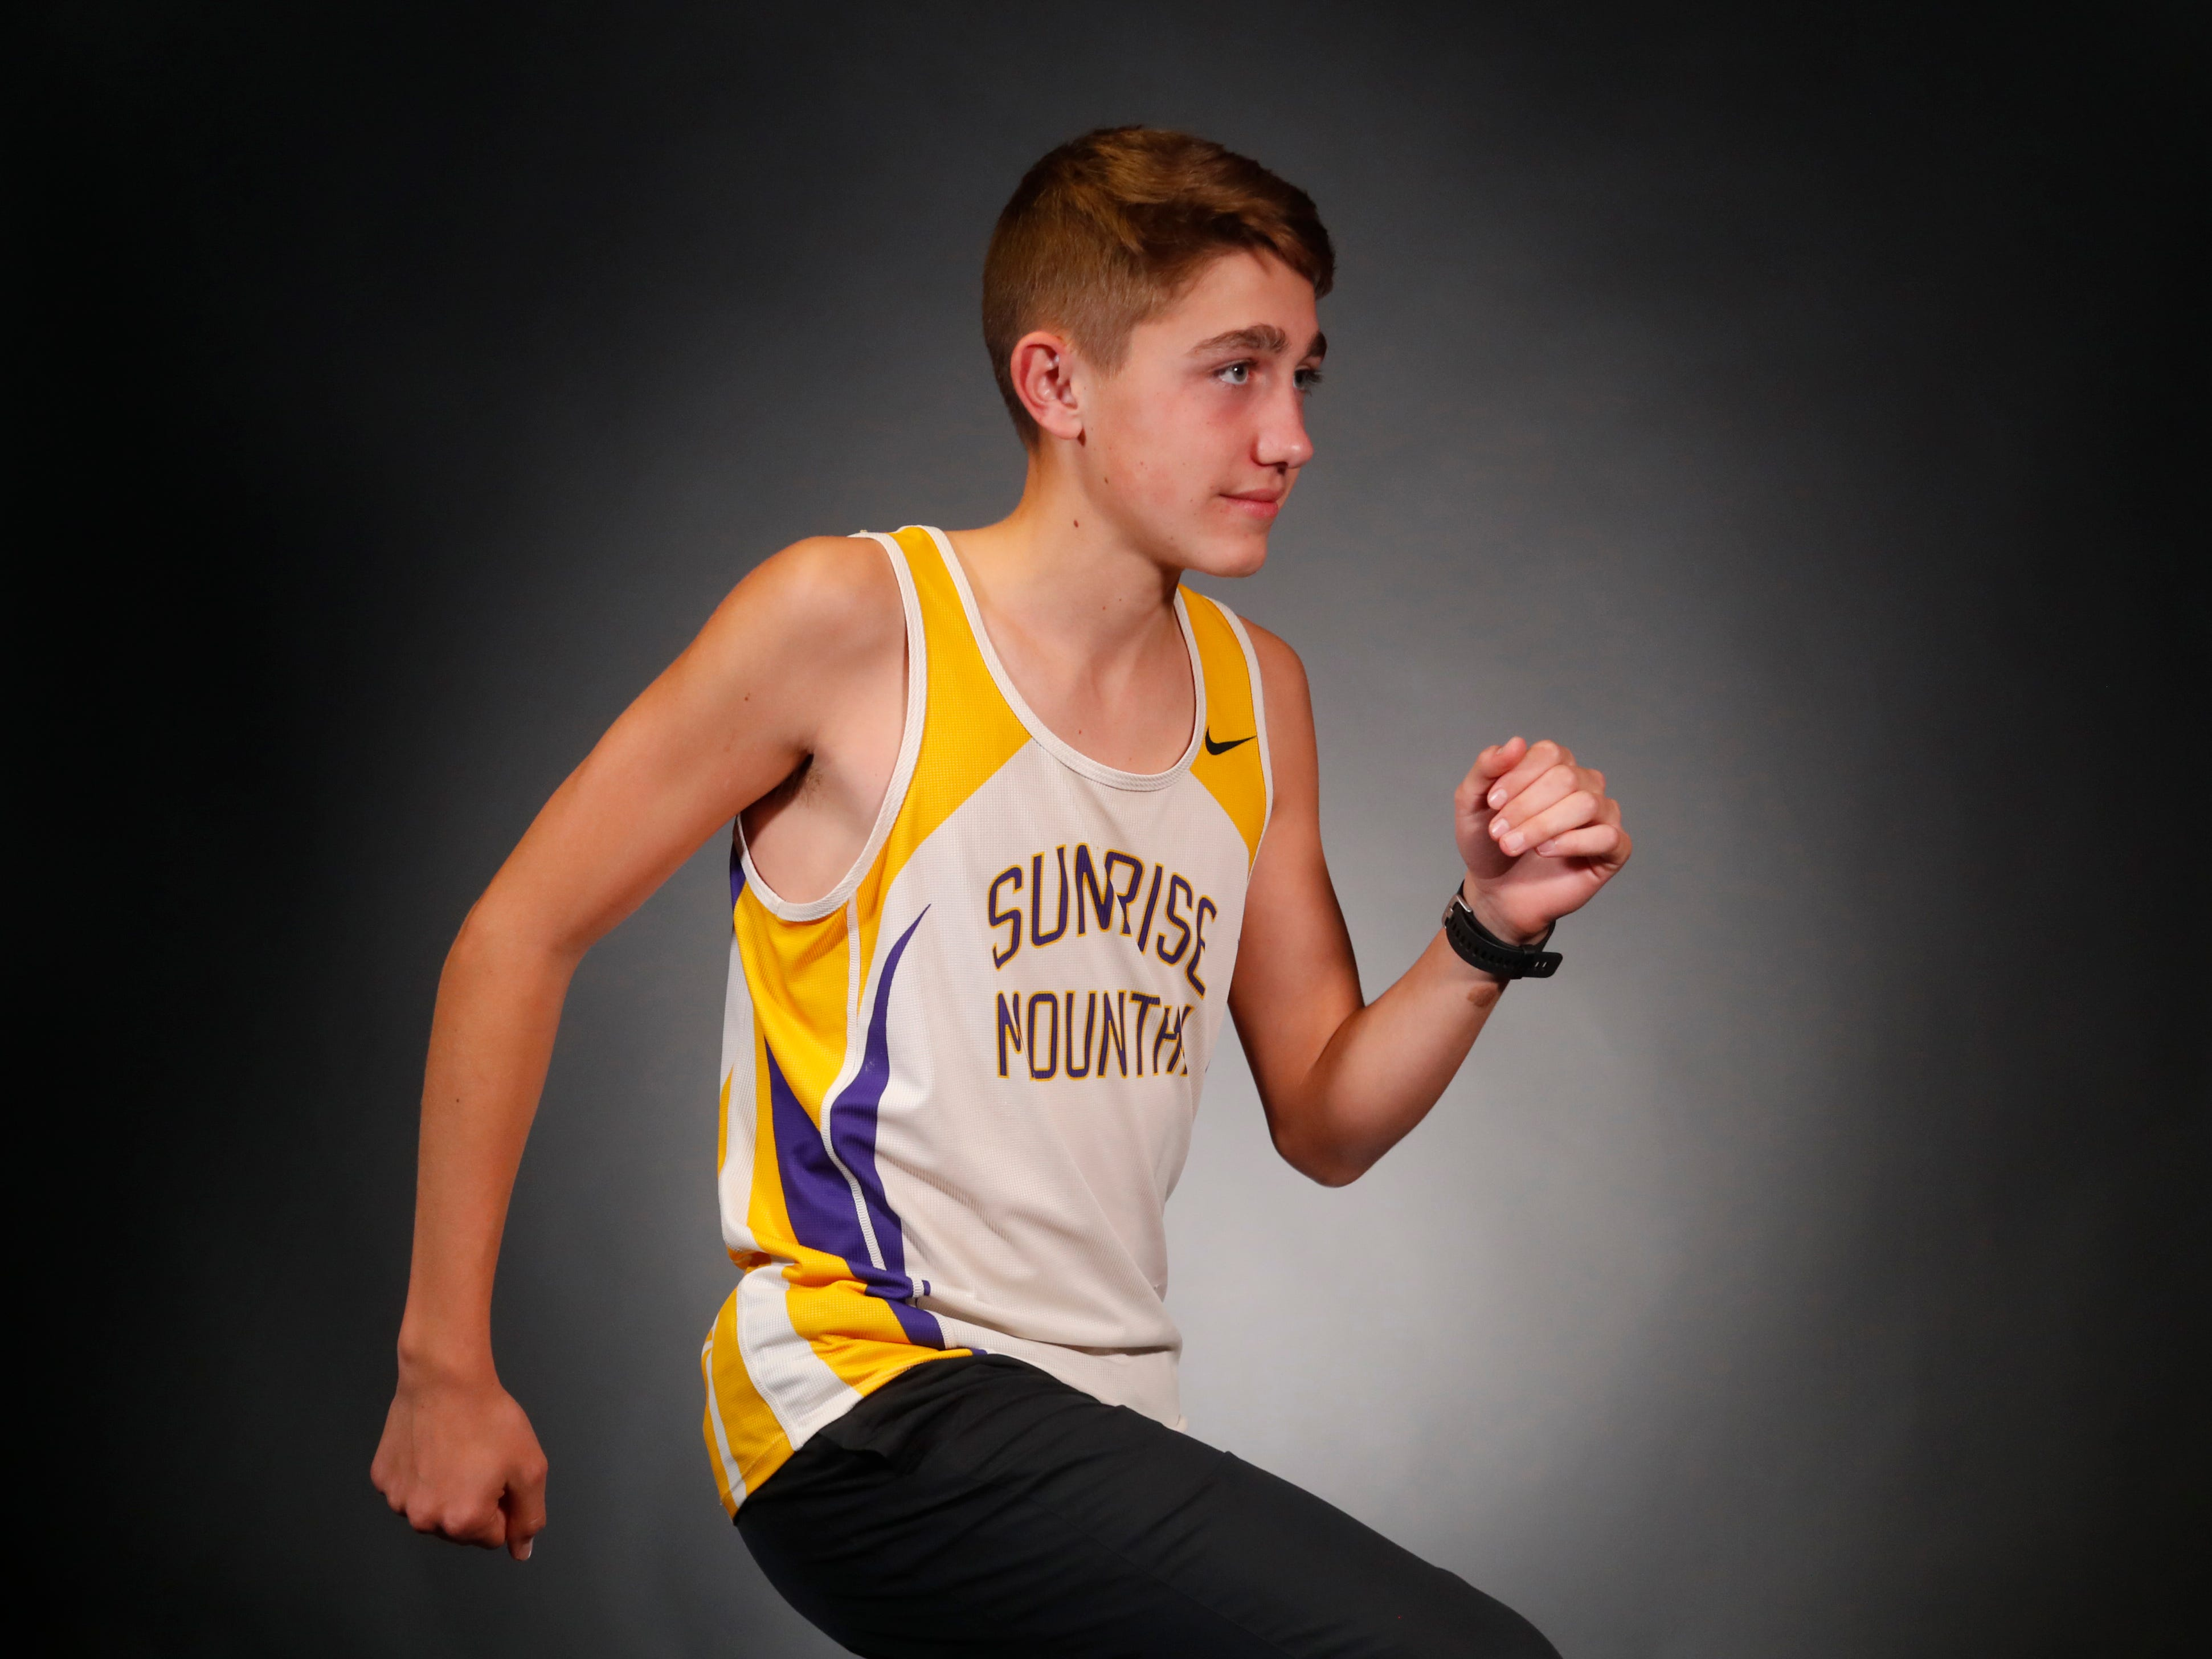 Braedon Palmer from Peorioa Sunrise Mountain is a nominee for azcentral Sports Awards High School Boys Cross Country Runner of the Year. #azcsportsawards